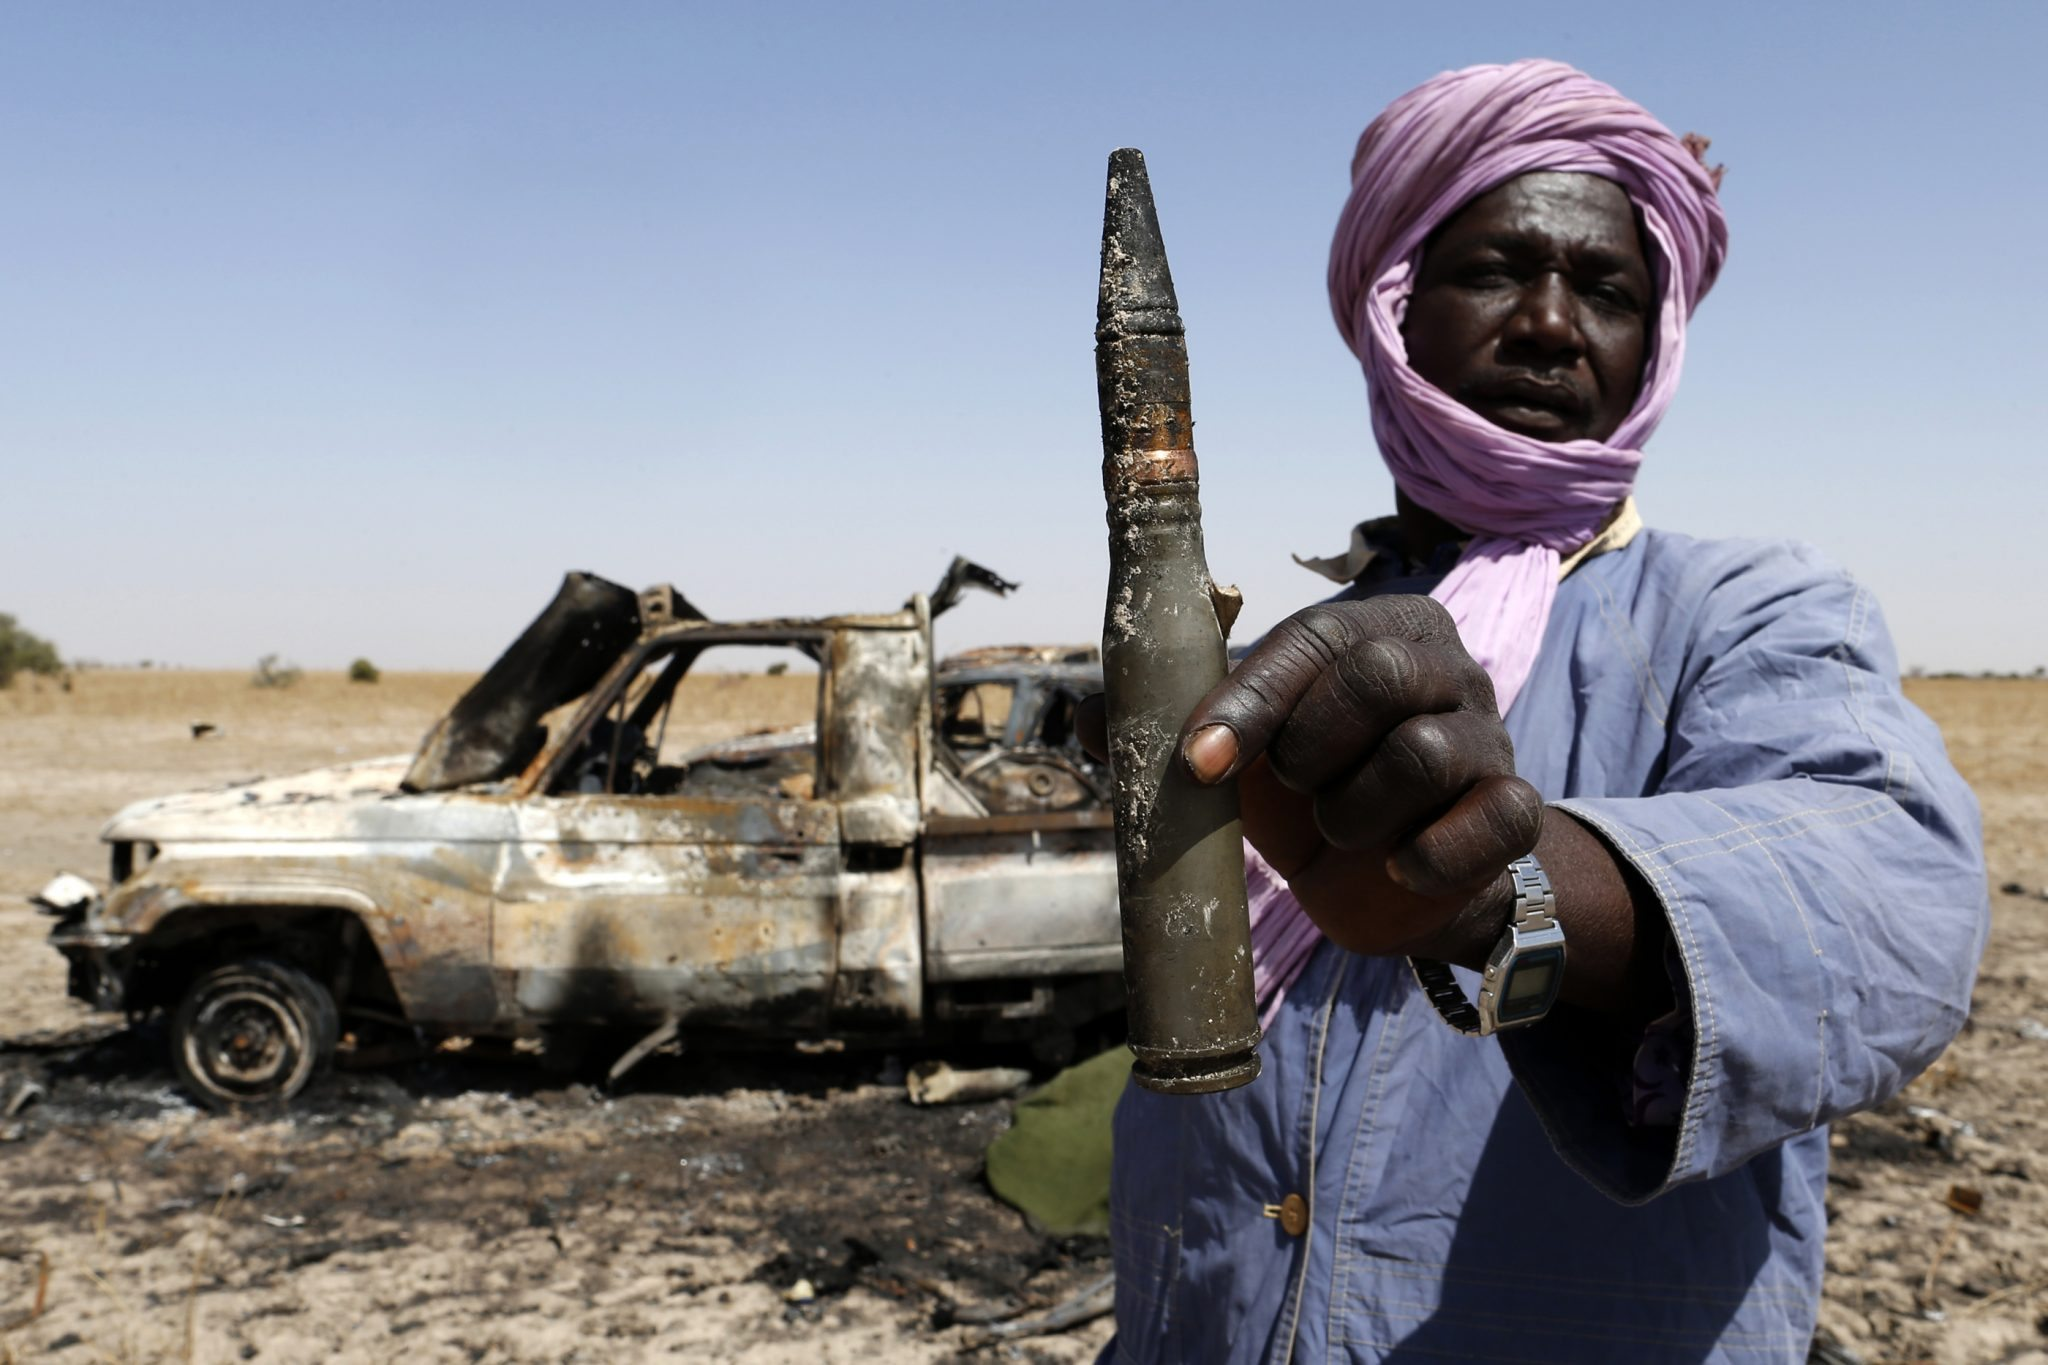 A Tuareg man holds a bullet near a destroyed vehicle belonging to Islamist rebels on the road between Diabaly and Timbuktu in Mali / REUTERS